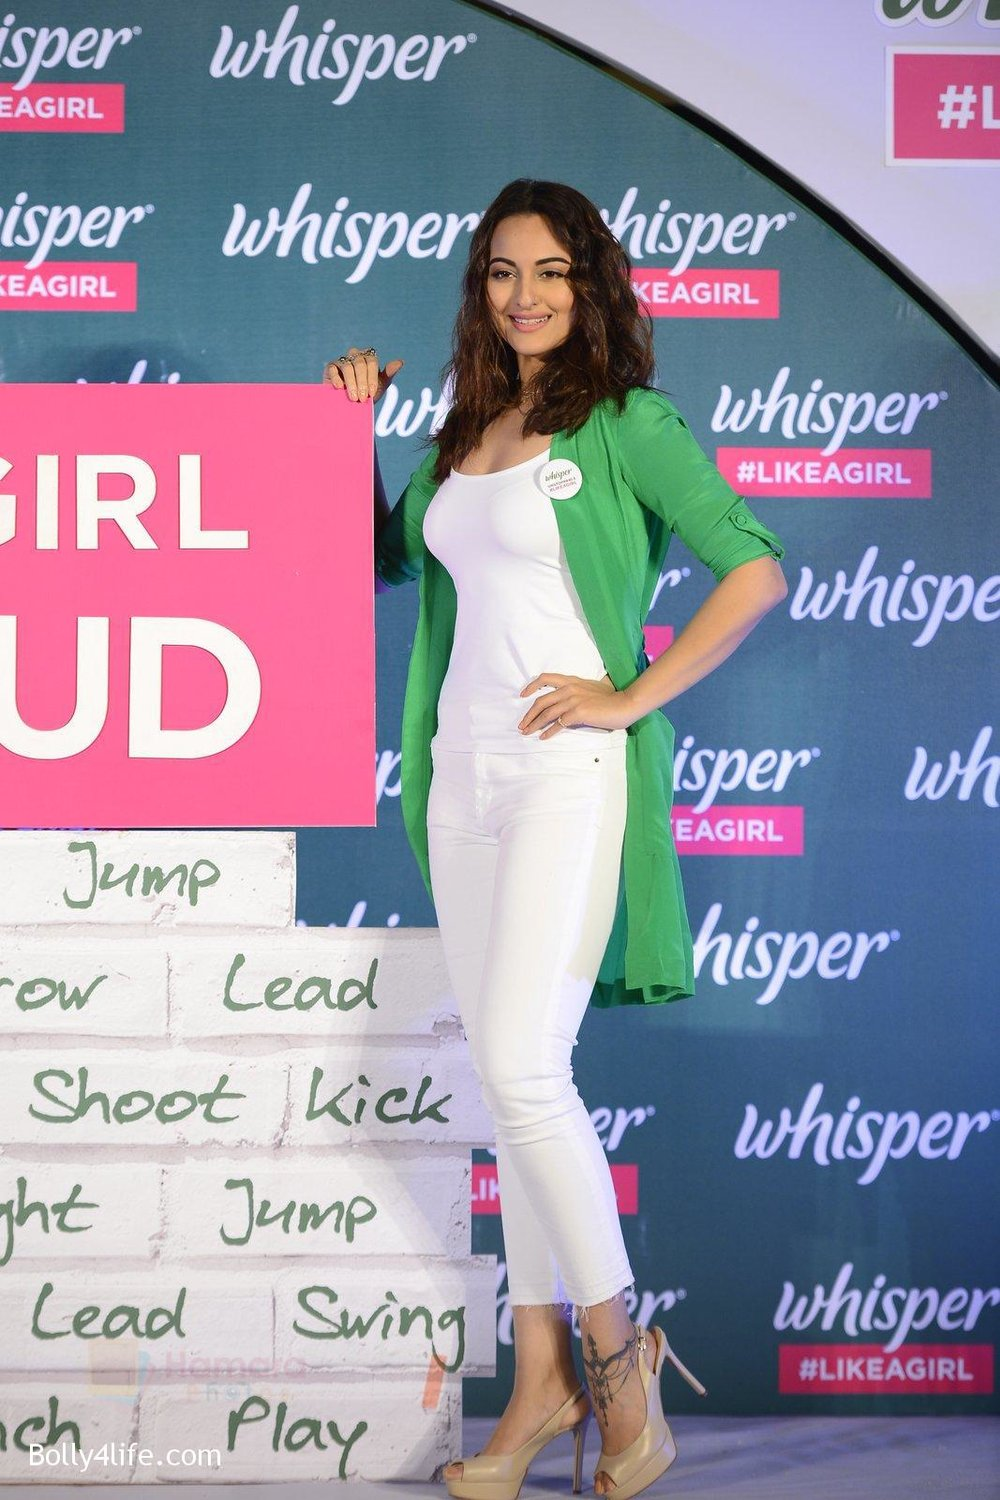 Sonakshi-Sinha-at-Whisper-new-campaign-launch-on-20th-Sept-2016-108.jpg